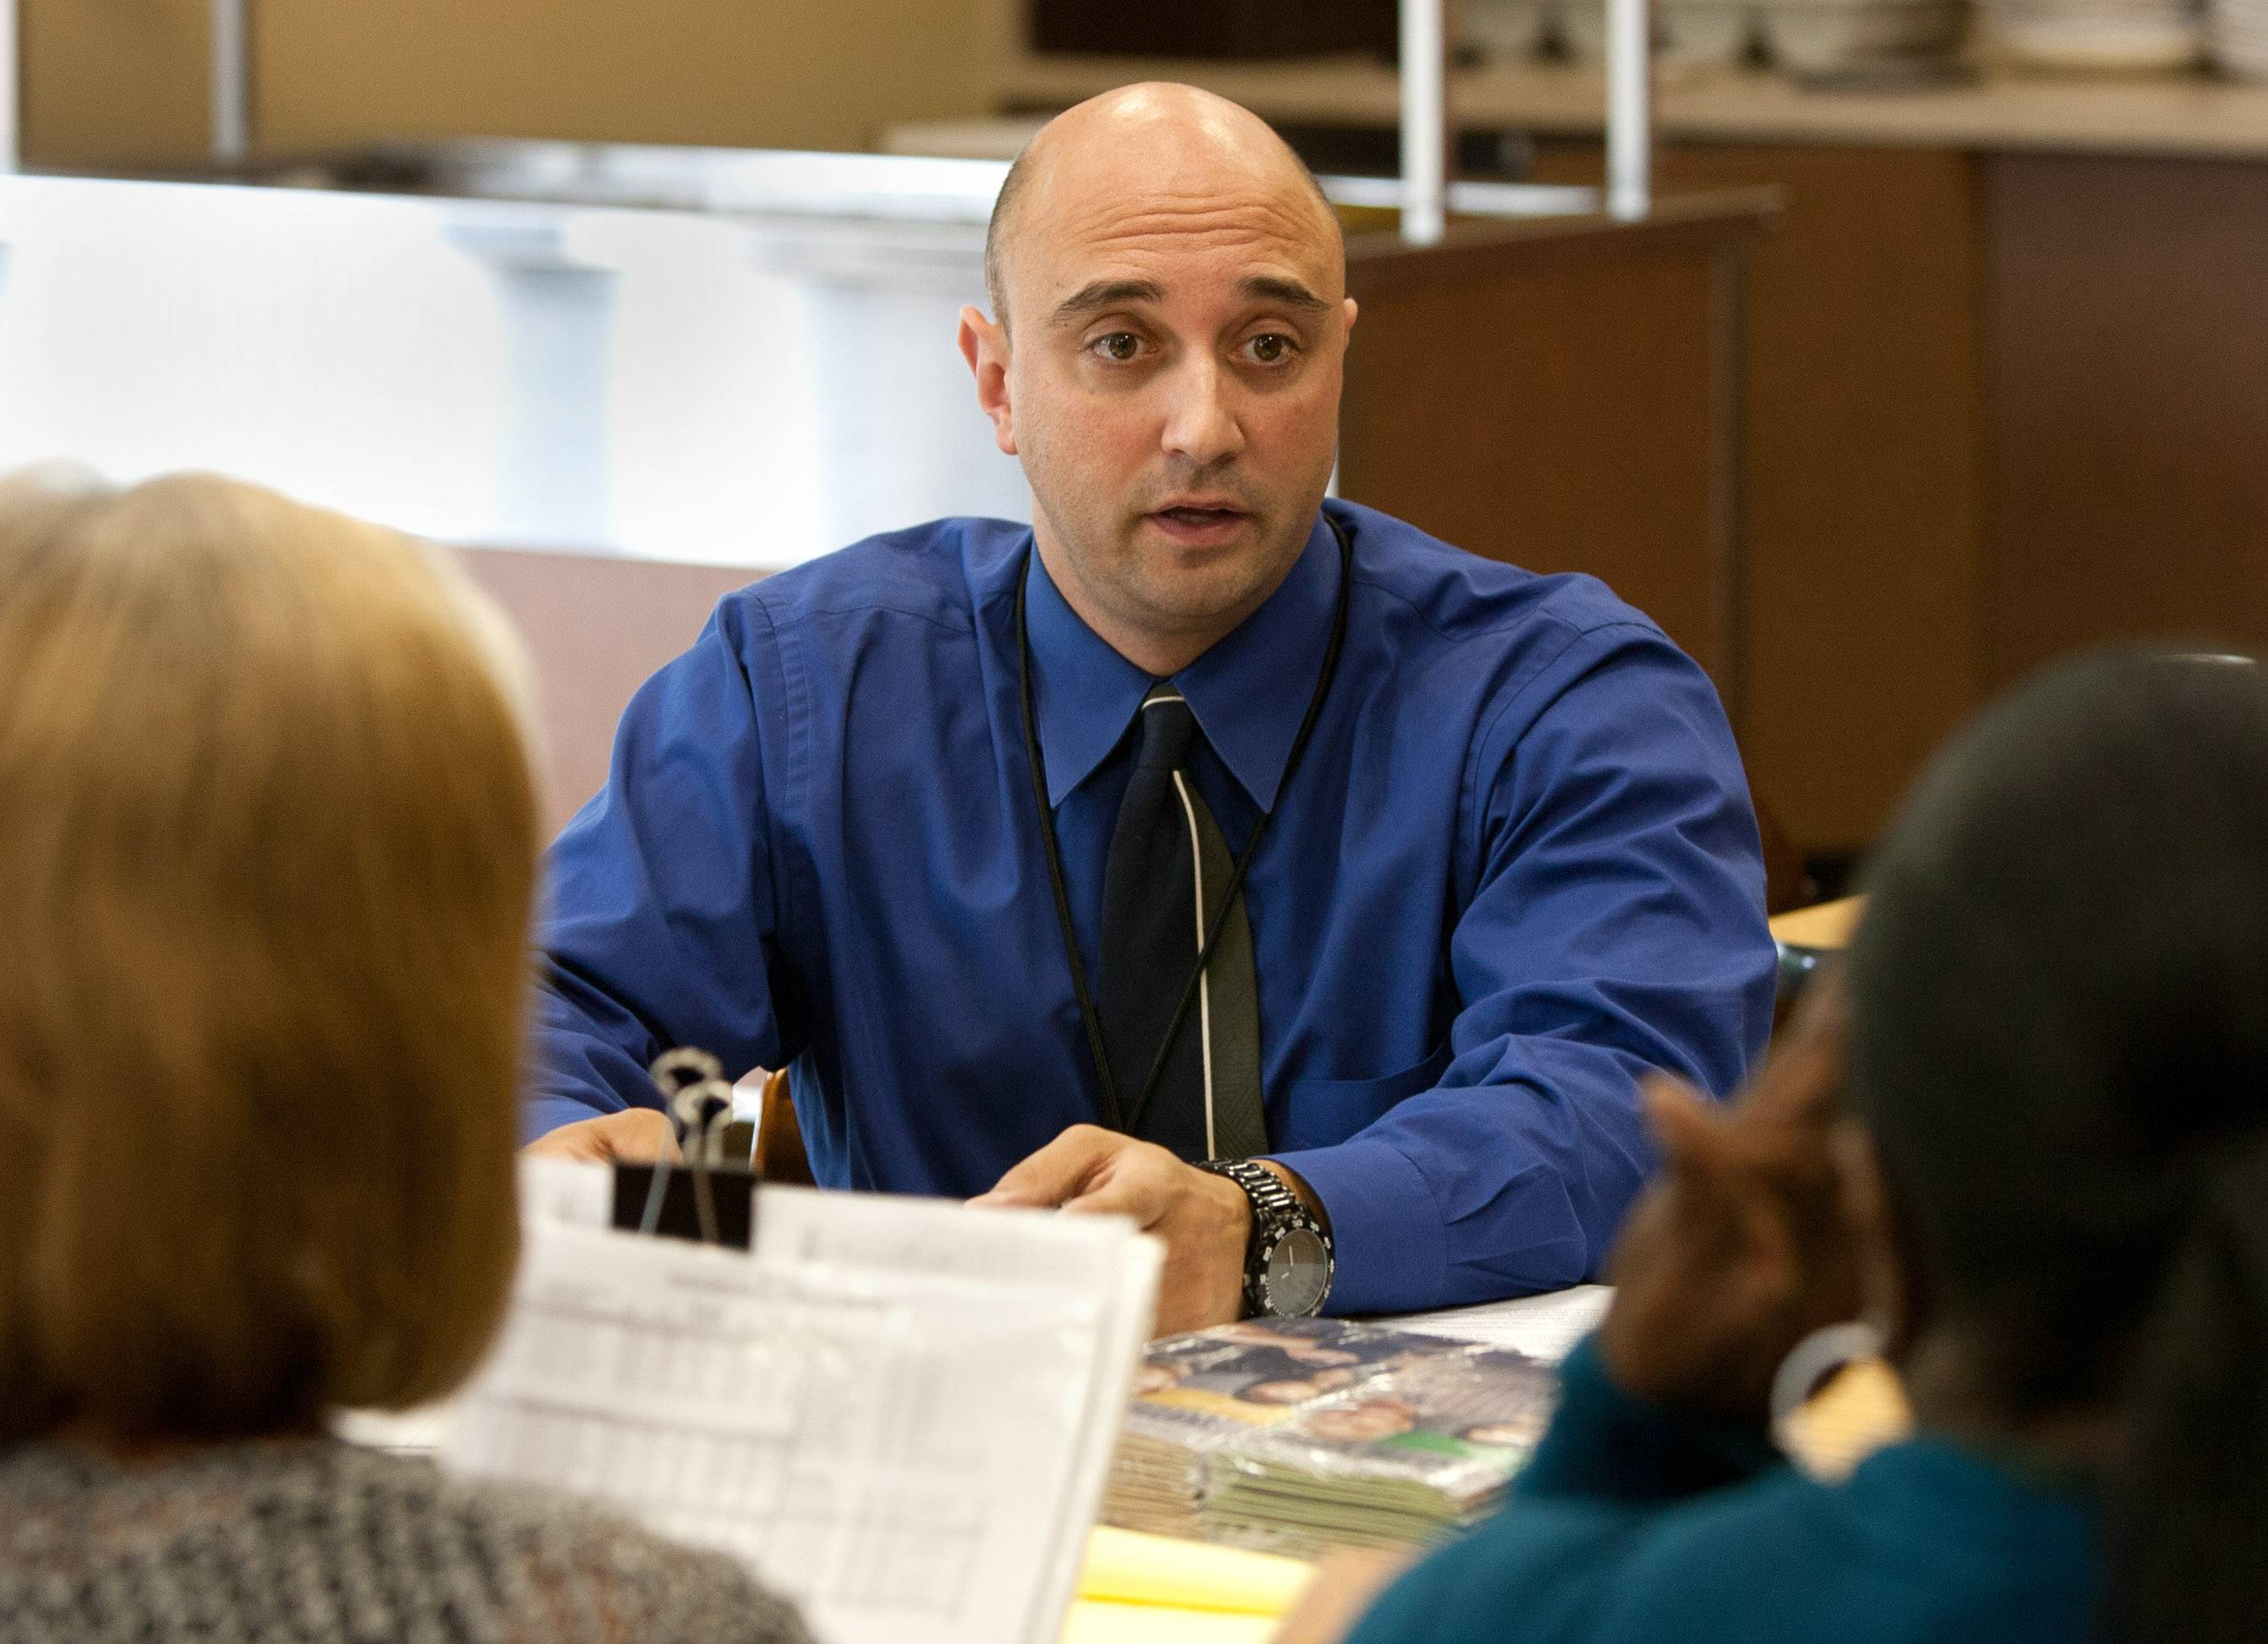 Counselors: Heroin treatment requires work, support